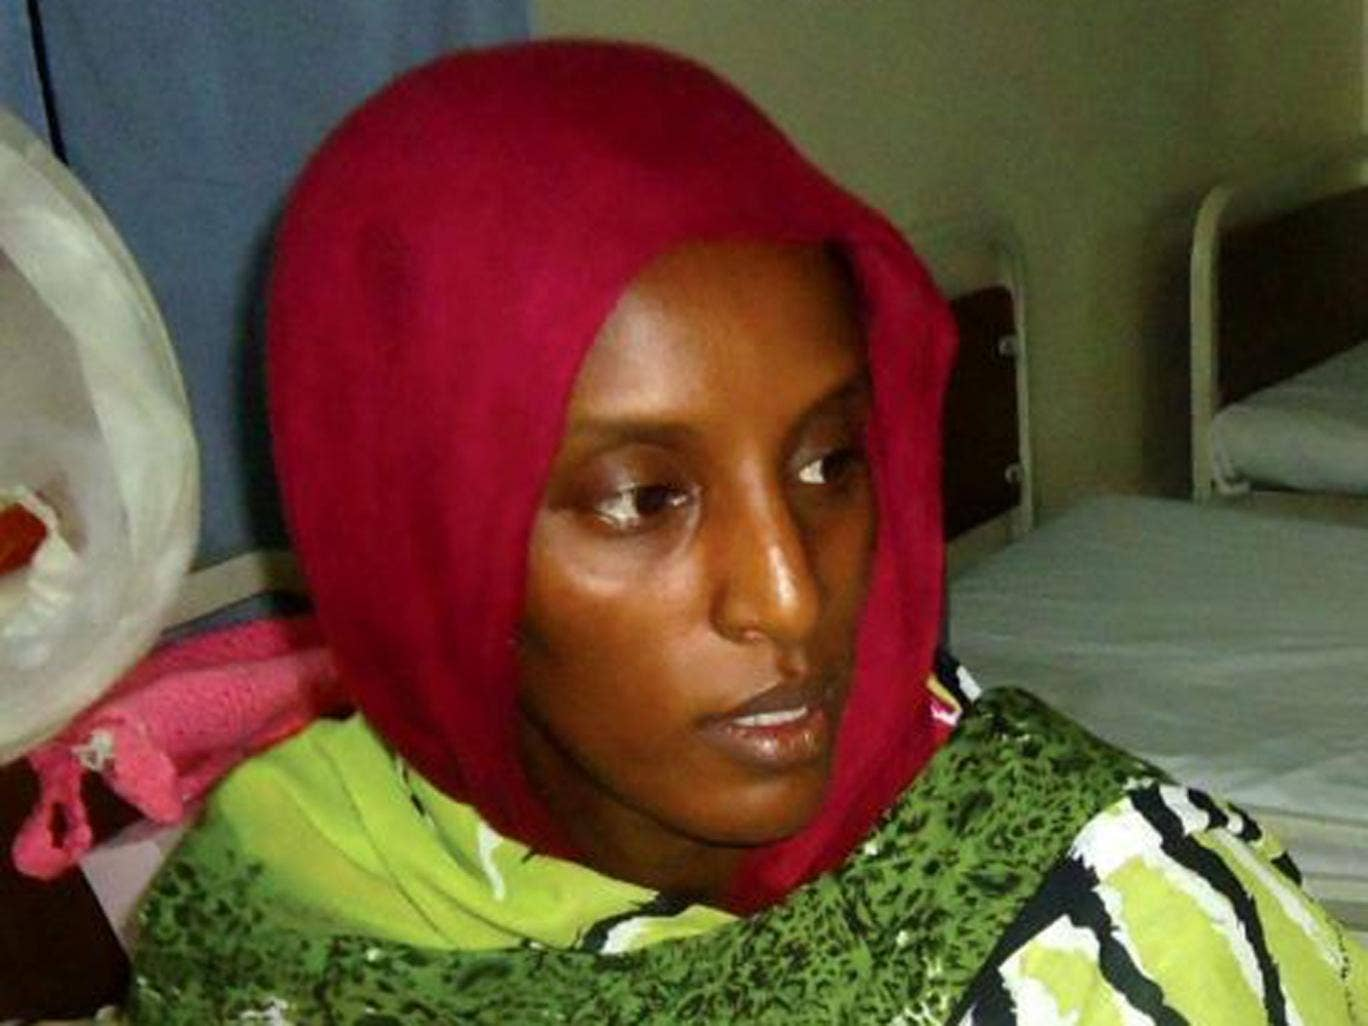 Meriam Ibrahim was detained trying to flee Sudan